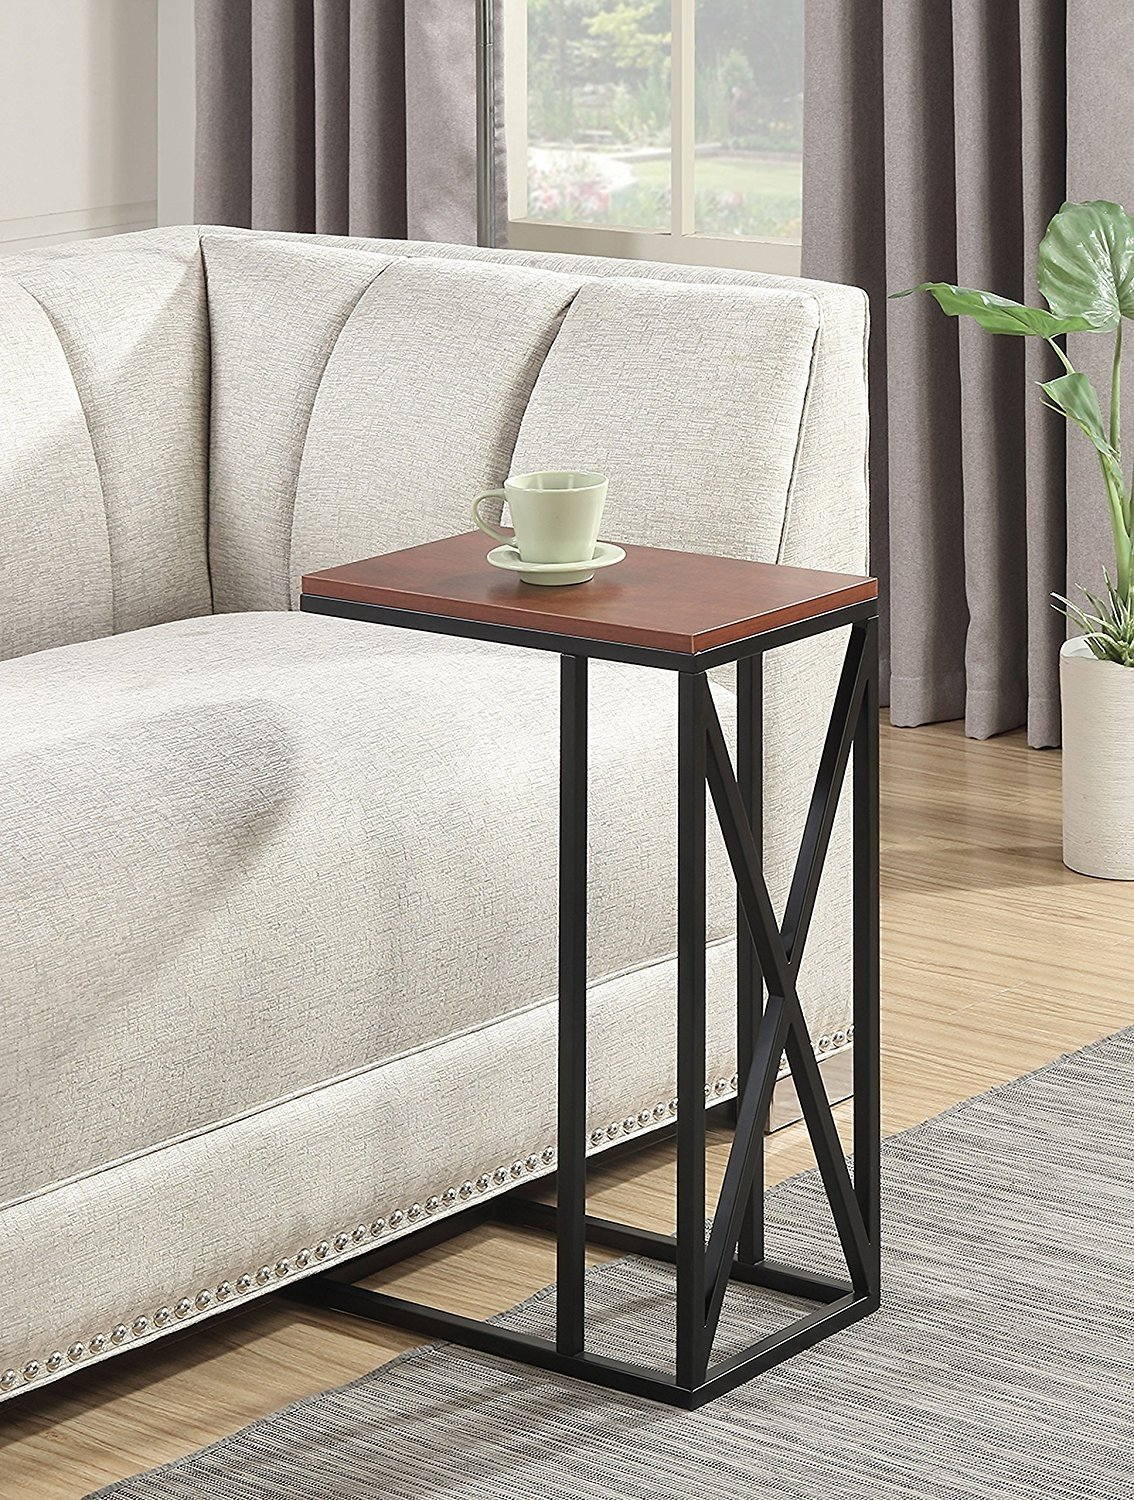 Indoor Multi-function Accent table Study Computer Desk Bedroom Living Room Modern Style End Table Sofa Side Table Coffee Table End The Table